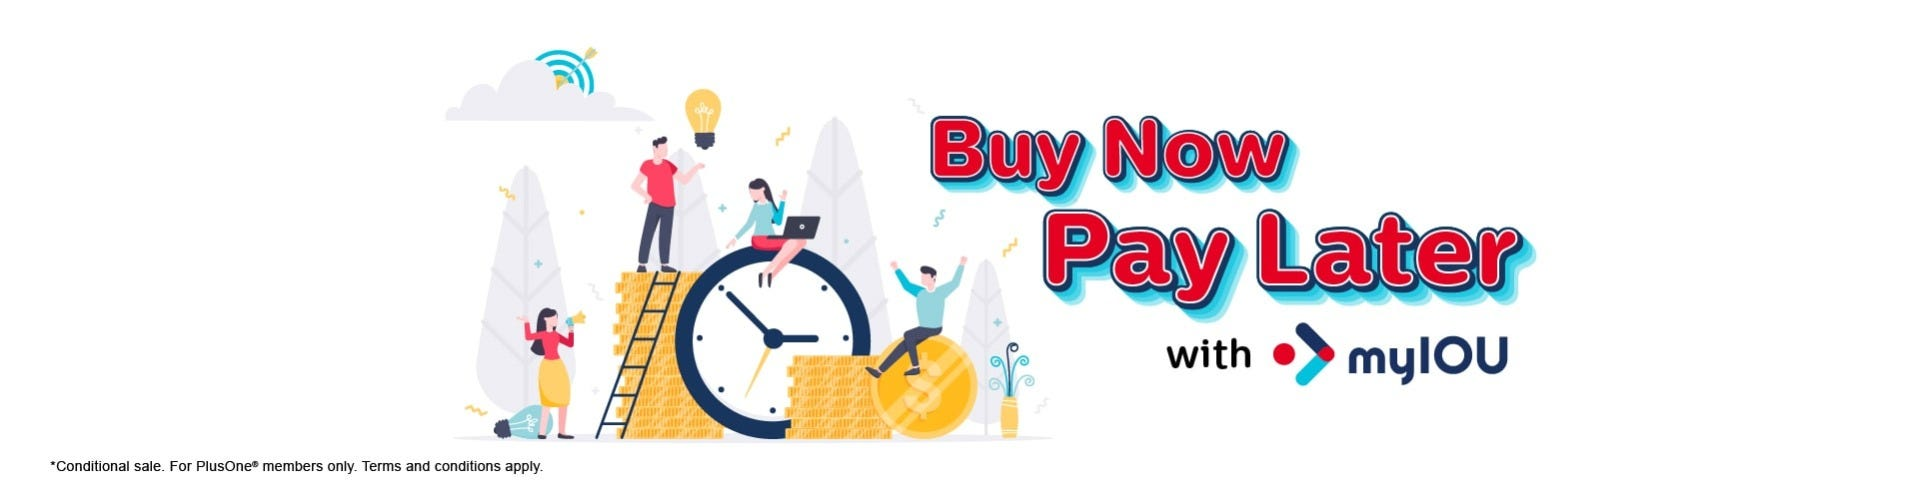 ioupay Buy Now Pay Later